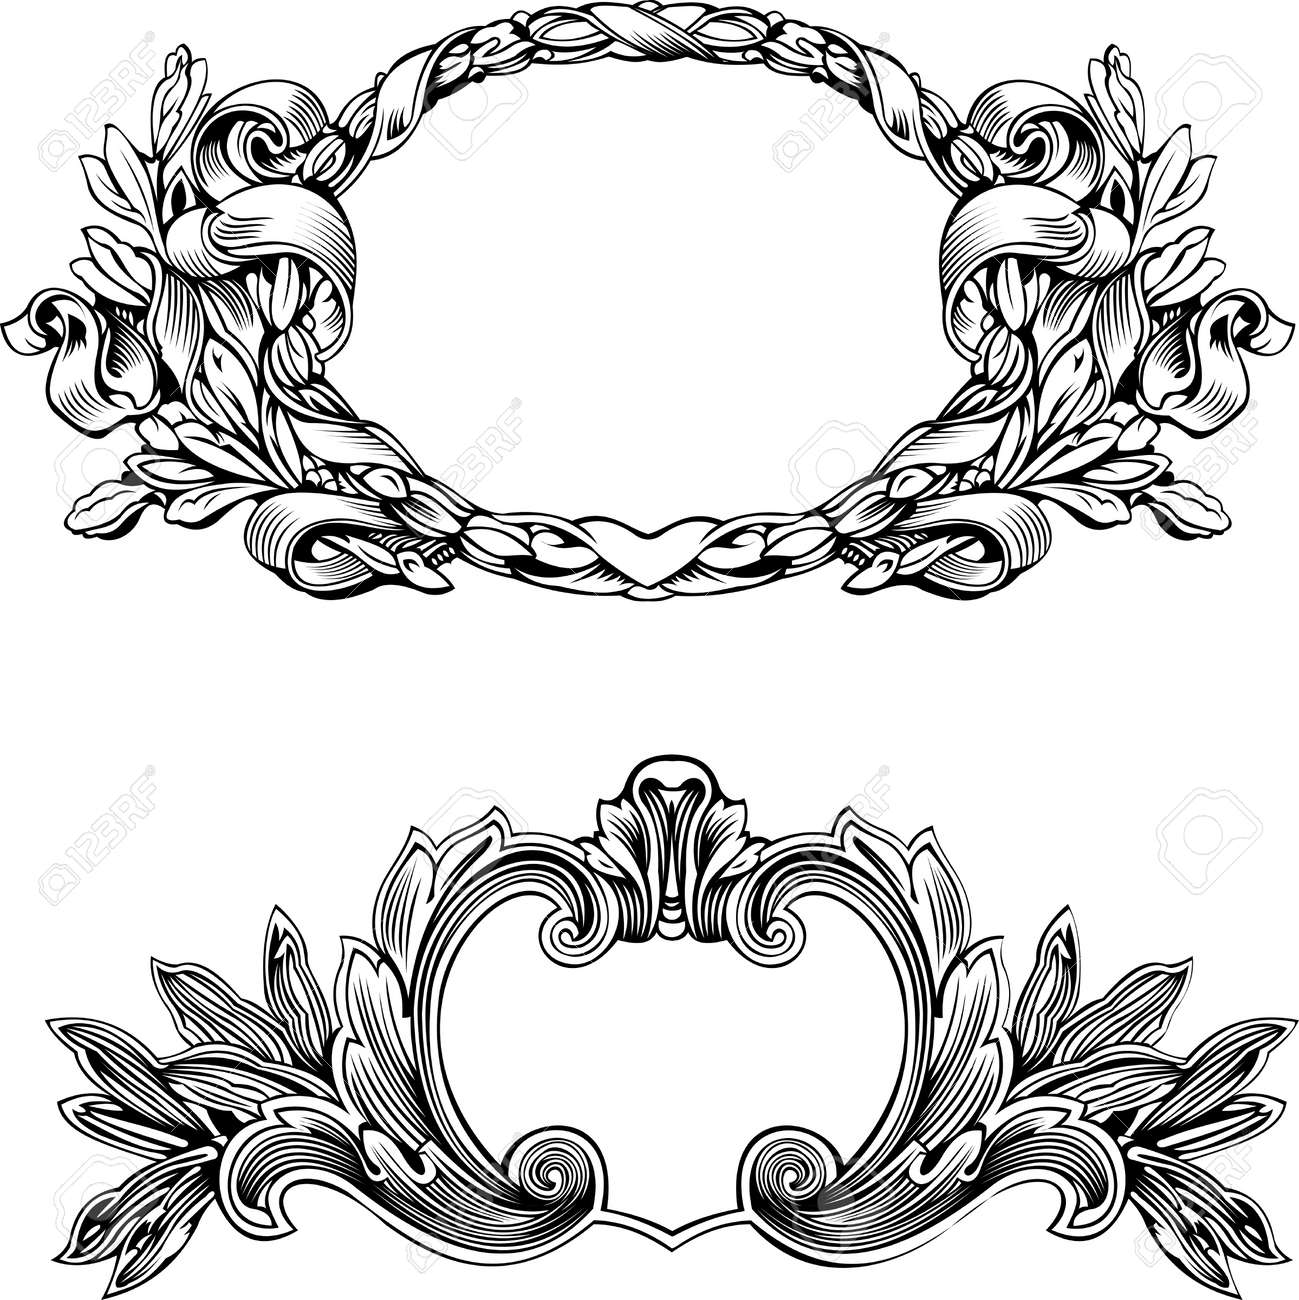 antique frame engraving scalable and editable vector illustration stock vector 8336519